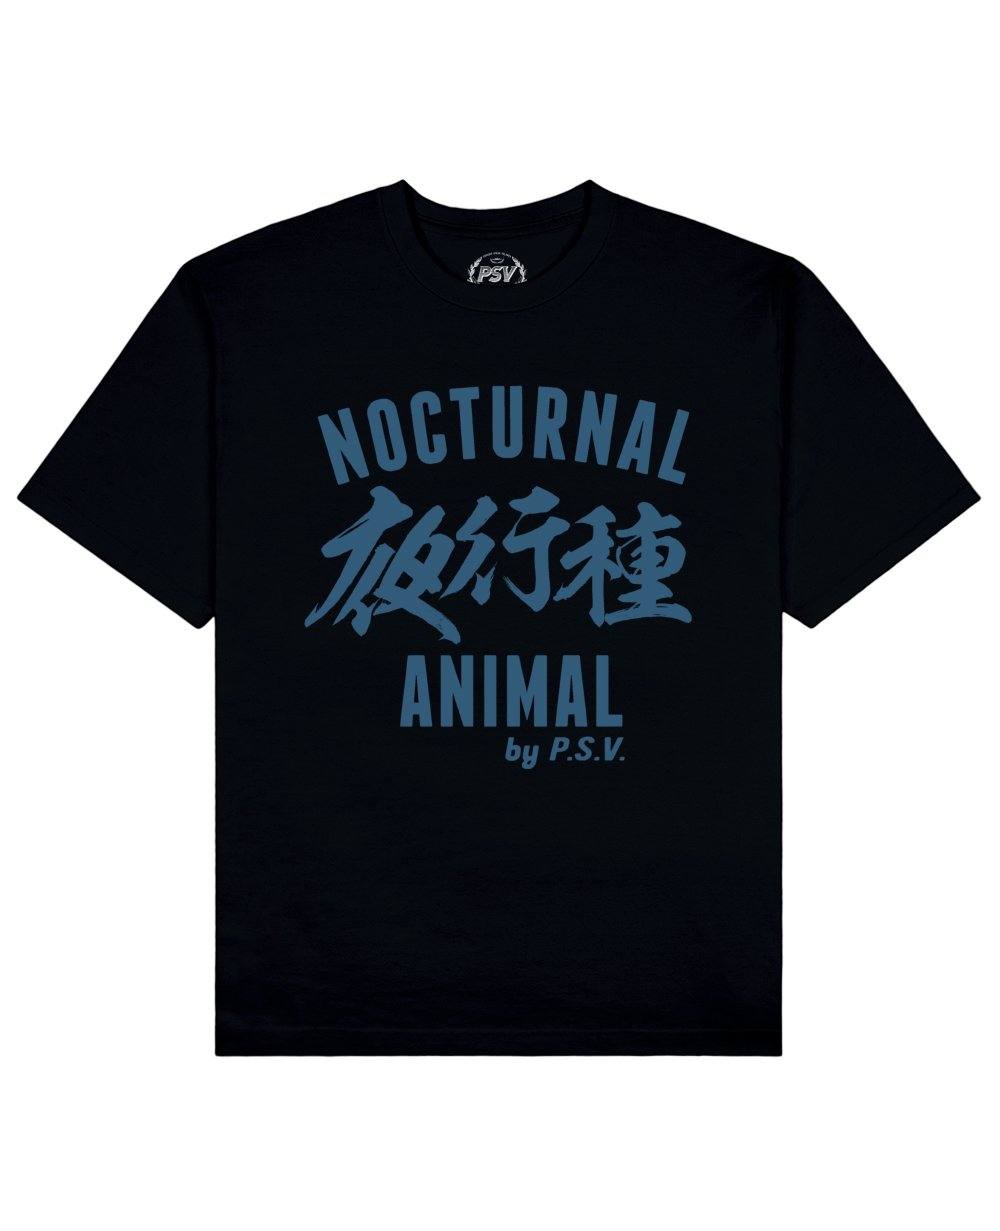 Nocturnal Animal Print T-Shirt in Black - T-Shirts - PSV - BRANMA